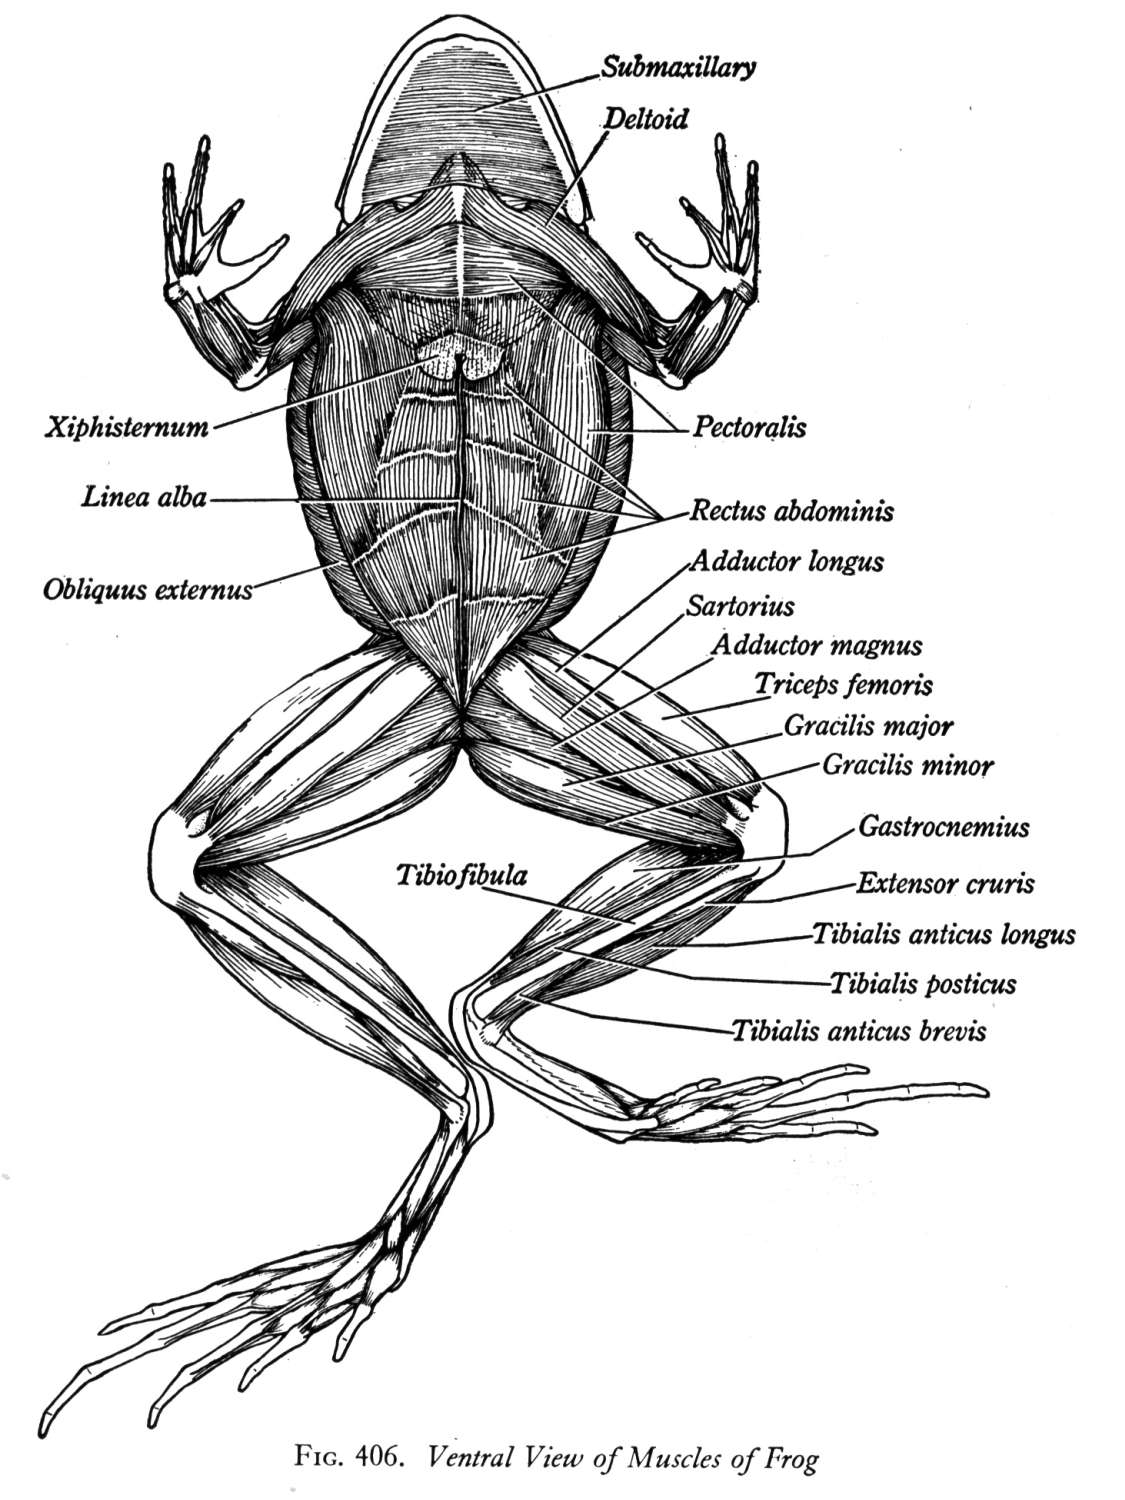 Anatomy  Frog Anatomy Frog Anatomy Diagram  Frog Anatomy Game moreover Biology Corner Frog Dissection     topsimages additionally Frog Parts and Functions besides Frog External Anatomy Lab Answers furthermore frog anatomy worksheet – mokeasr club besides Frog Dissection Worksheet 57 Super Frog External Anatomy Worksheet further Frog Parts and Functions in addition  likewise 15 Best Images of Frog Dissection Coloring Worksheet   Frog External as well Frog External Anatomy additionally External Diagram Frog Drawing Pictures     picturesboss likewise Frog Dissection Instructions in addition Frog Anatomy Worksheet   Free Printables Worksheet besides Frog External Anatomy Lab Answers moreover Quiz   Worksheet   Frog Anatomy   Study together with Frog Dissection Worksheet 57 Super Frog External Anatomy Worksheet. on frog external anatomy worksheet answers